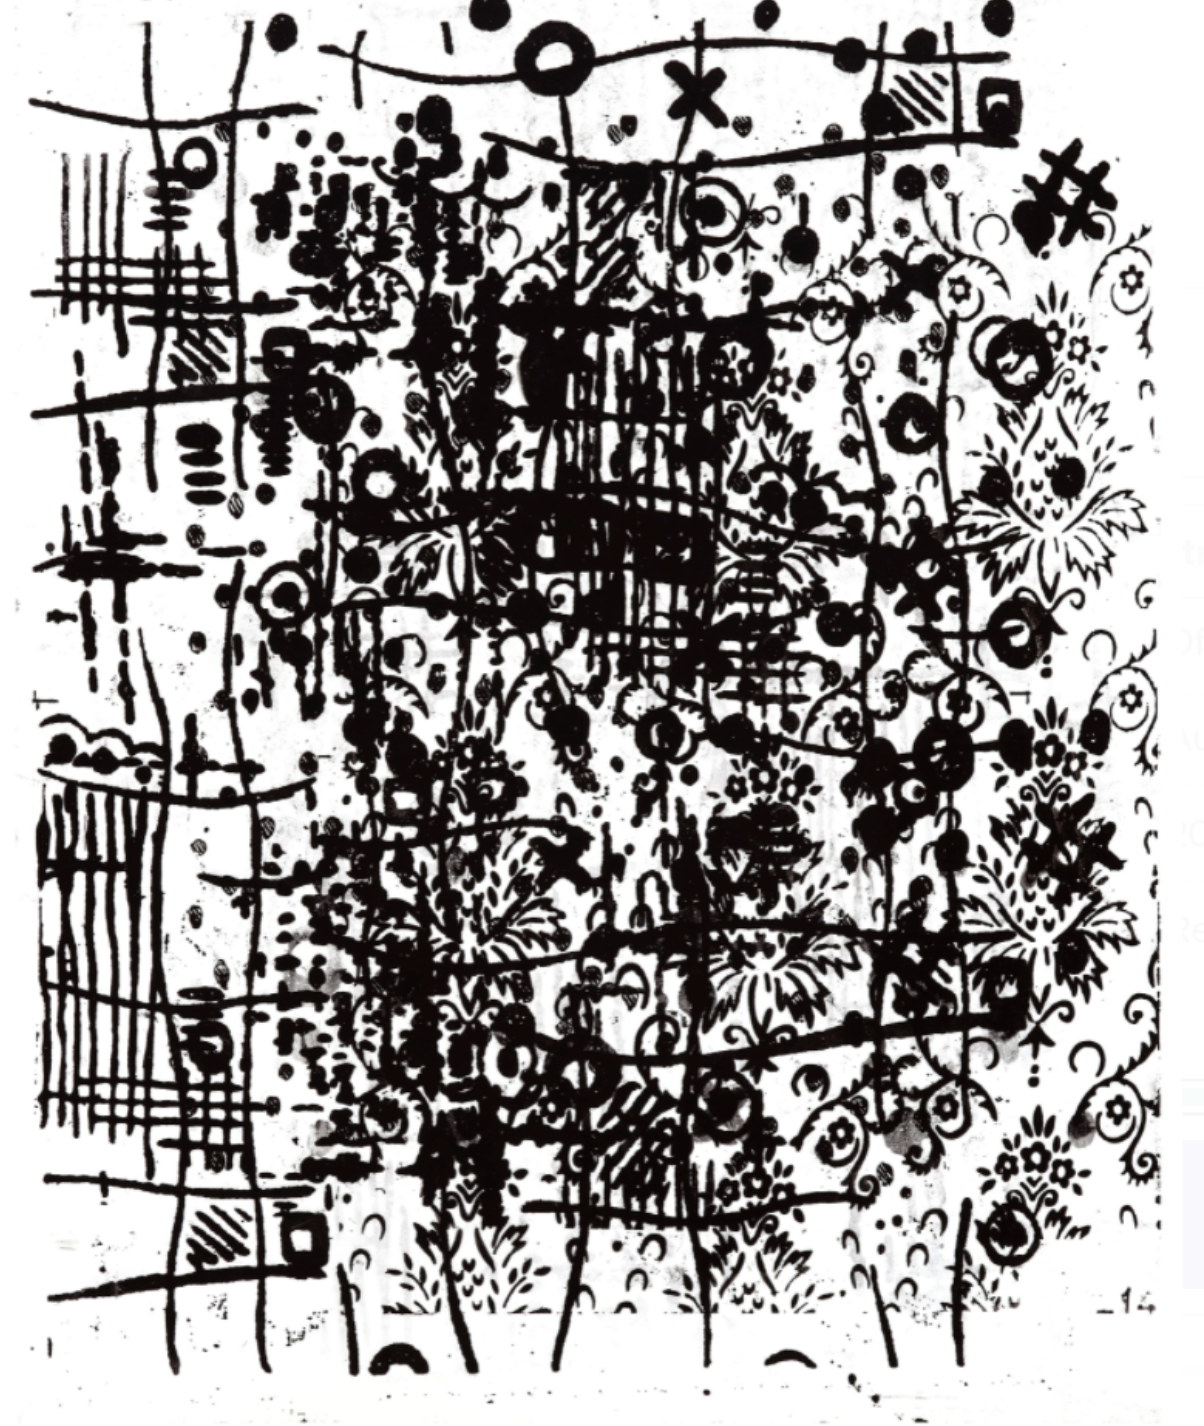 Untitled by Christopher Wool (1997)